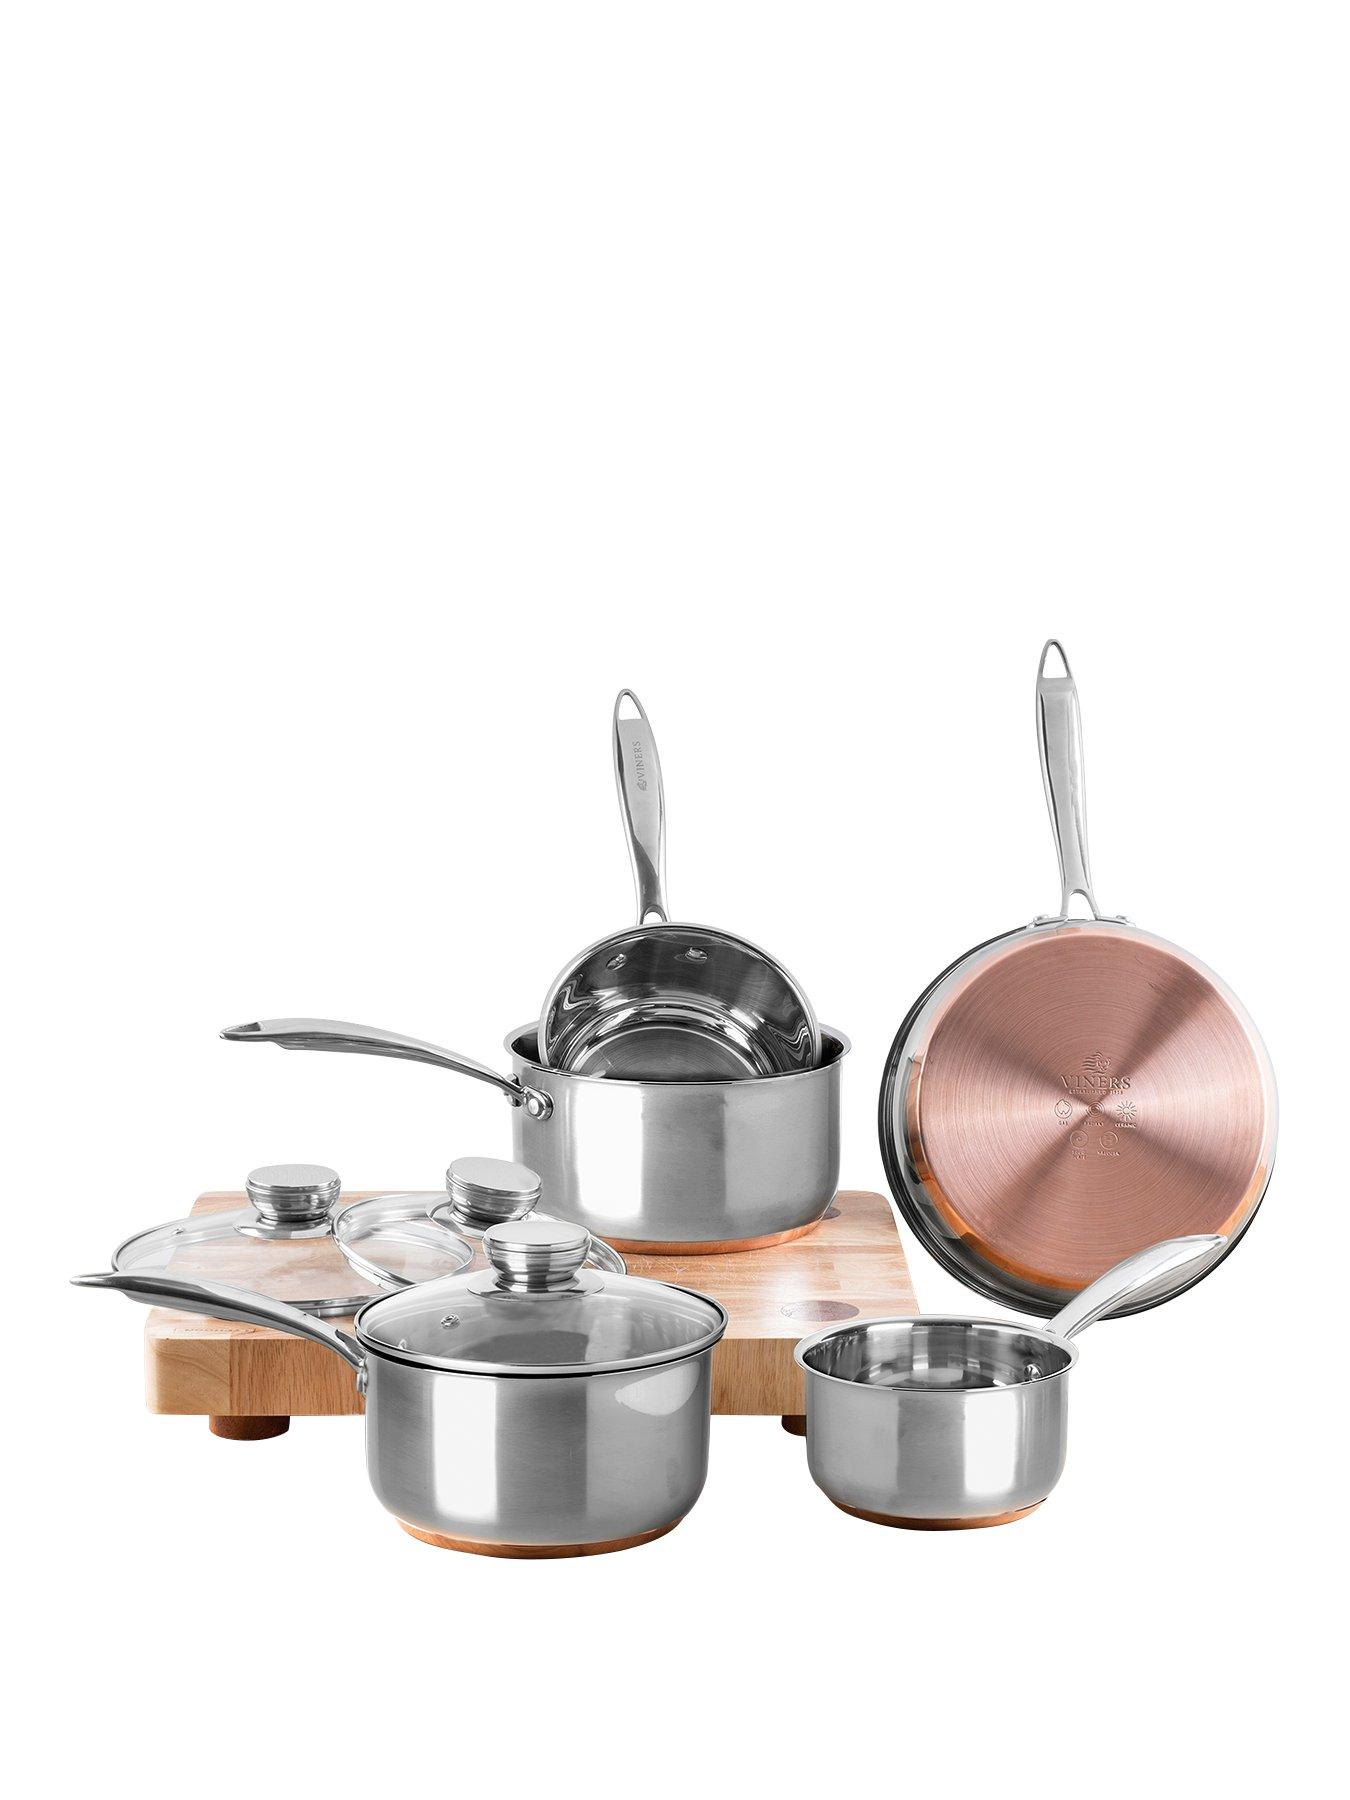 5-Piece Viners Stainless Steel Copper Base Pan Set